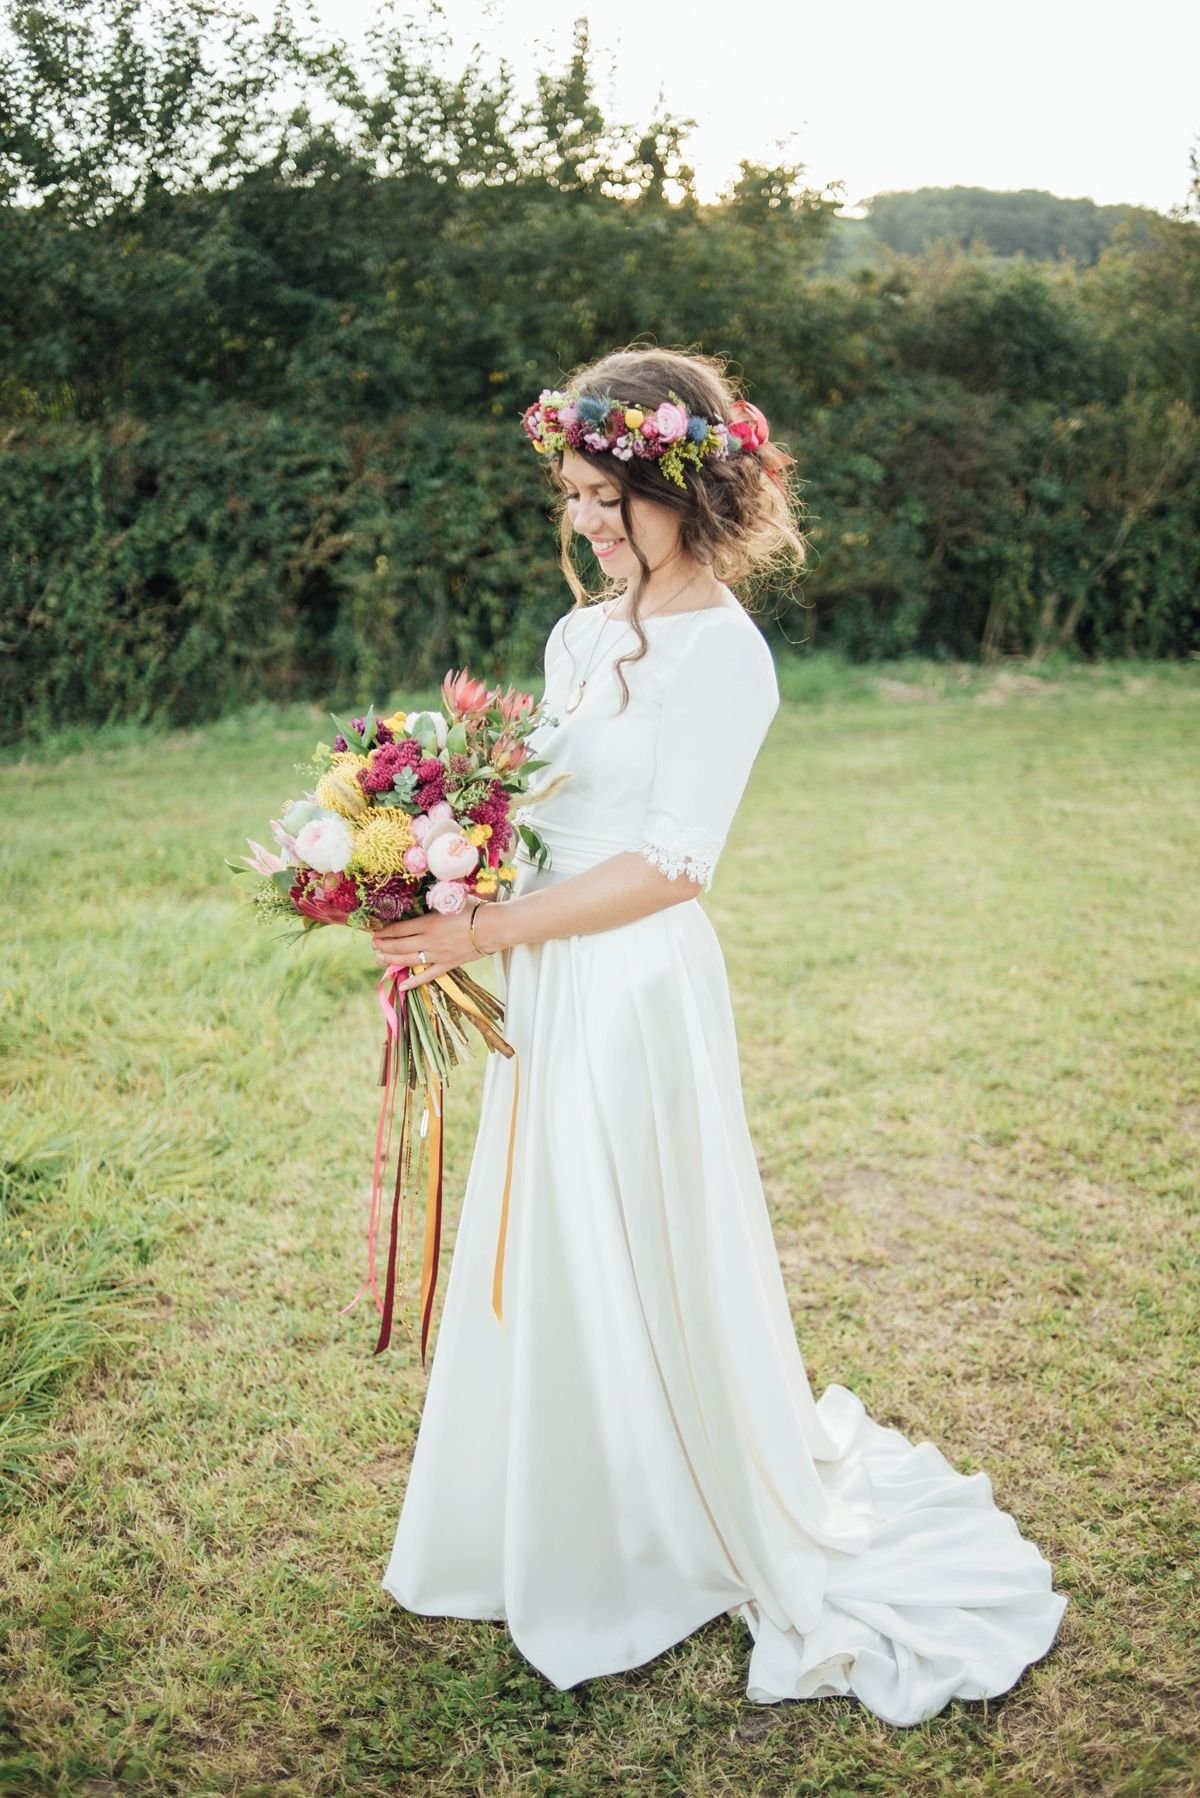 A Sun and Flower-filled Country Wedding in Devon